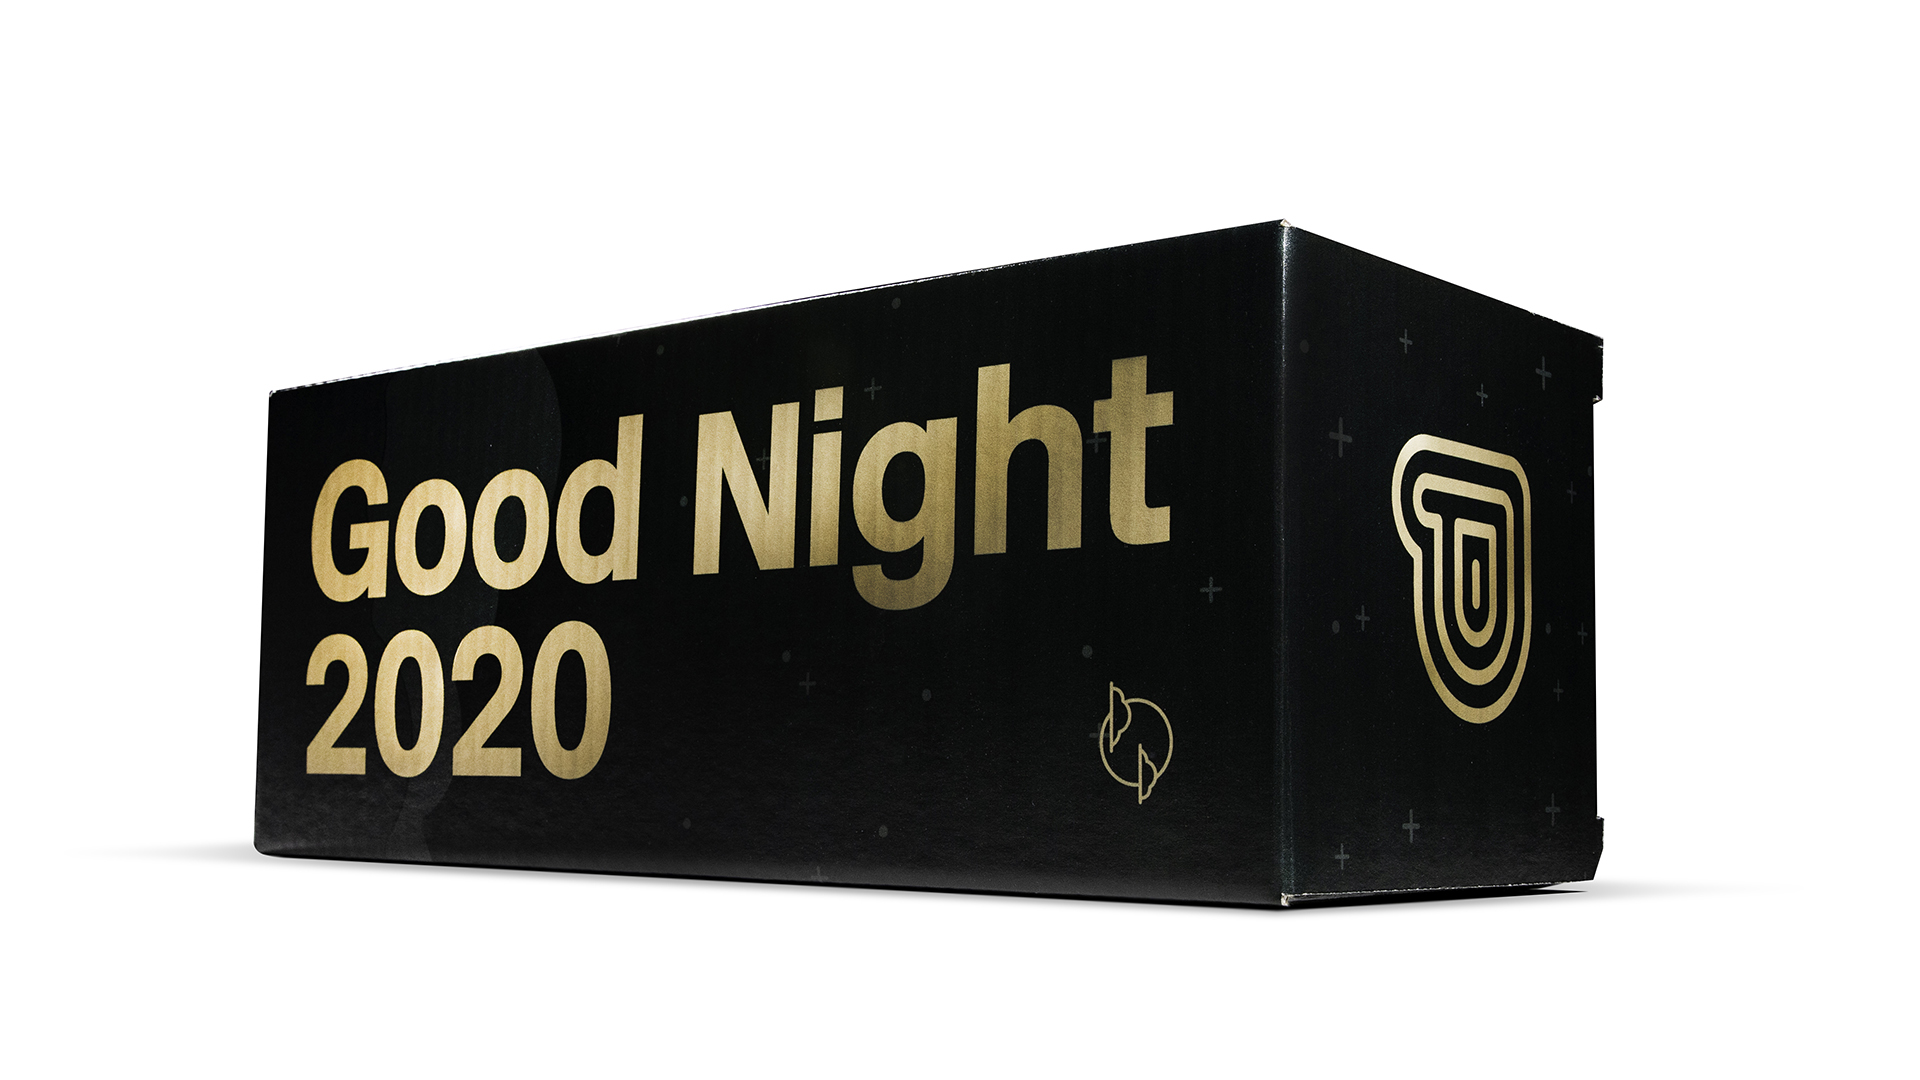 'Good Night 2020' Client Gifts - PaperSpecs